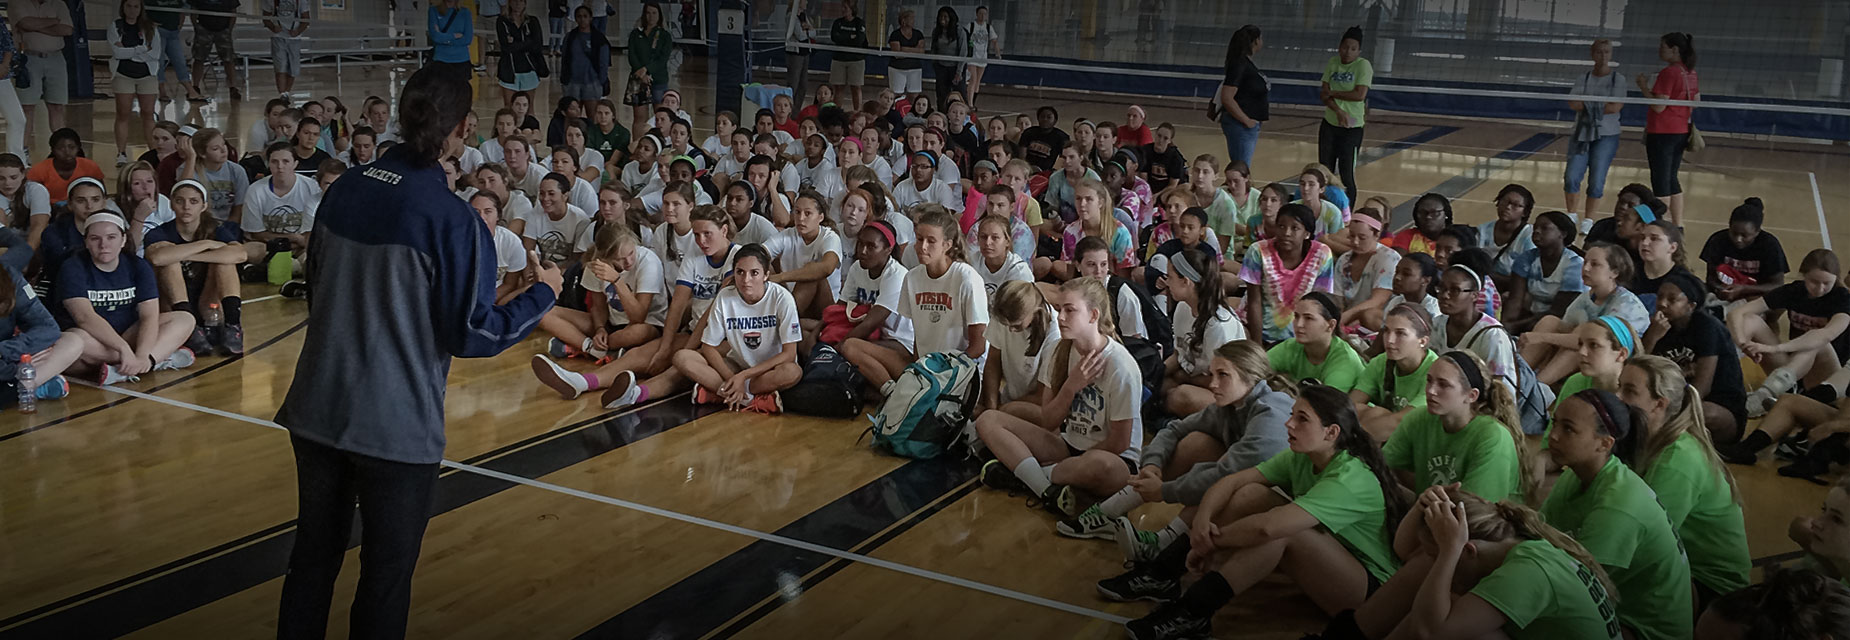 GTVB-Camp-campers-slider